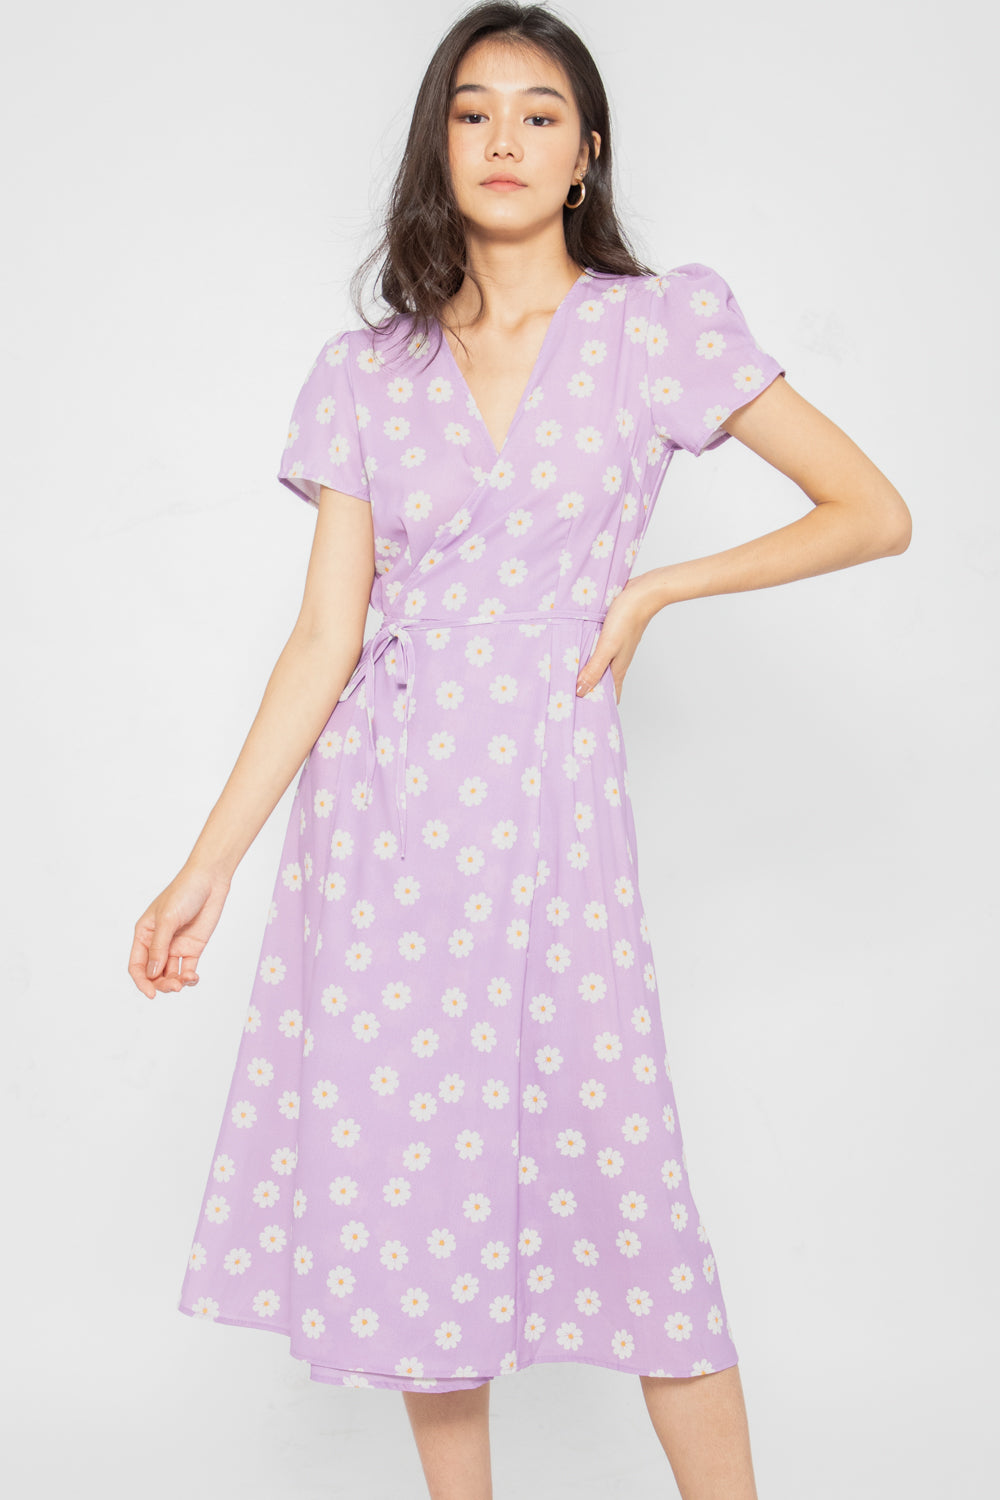 Giselle Floral Wrap Dress - Three One Duo